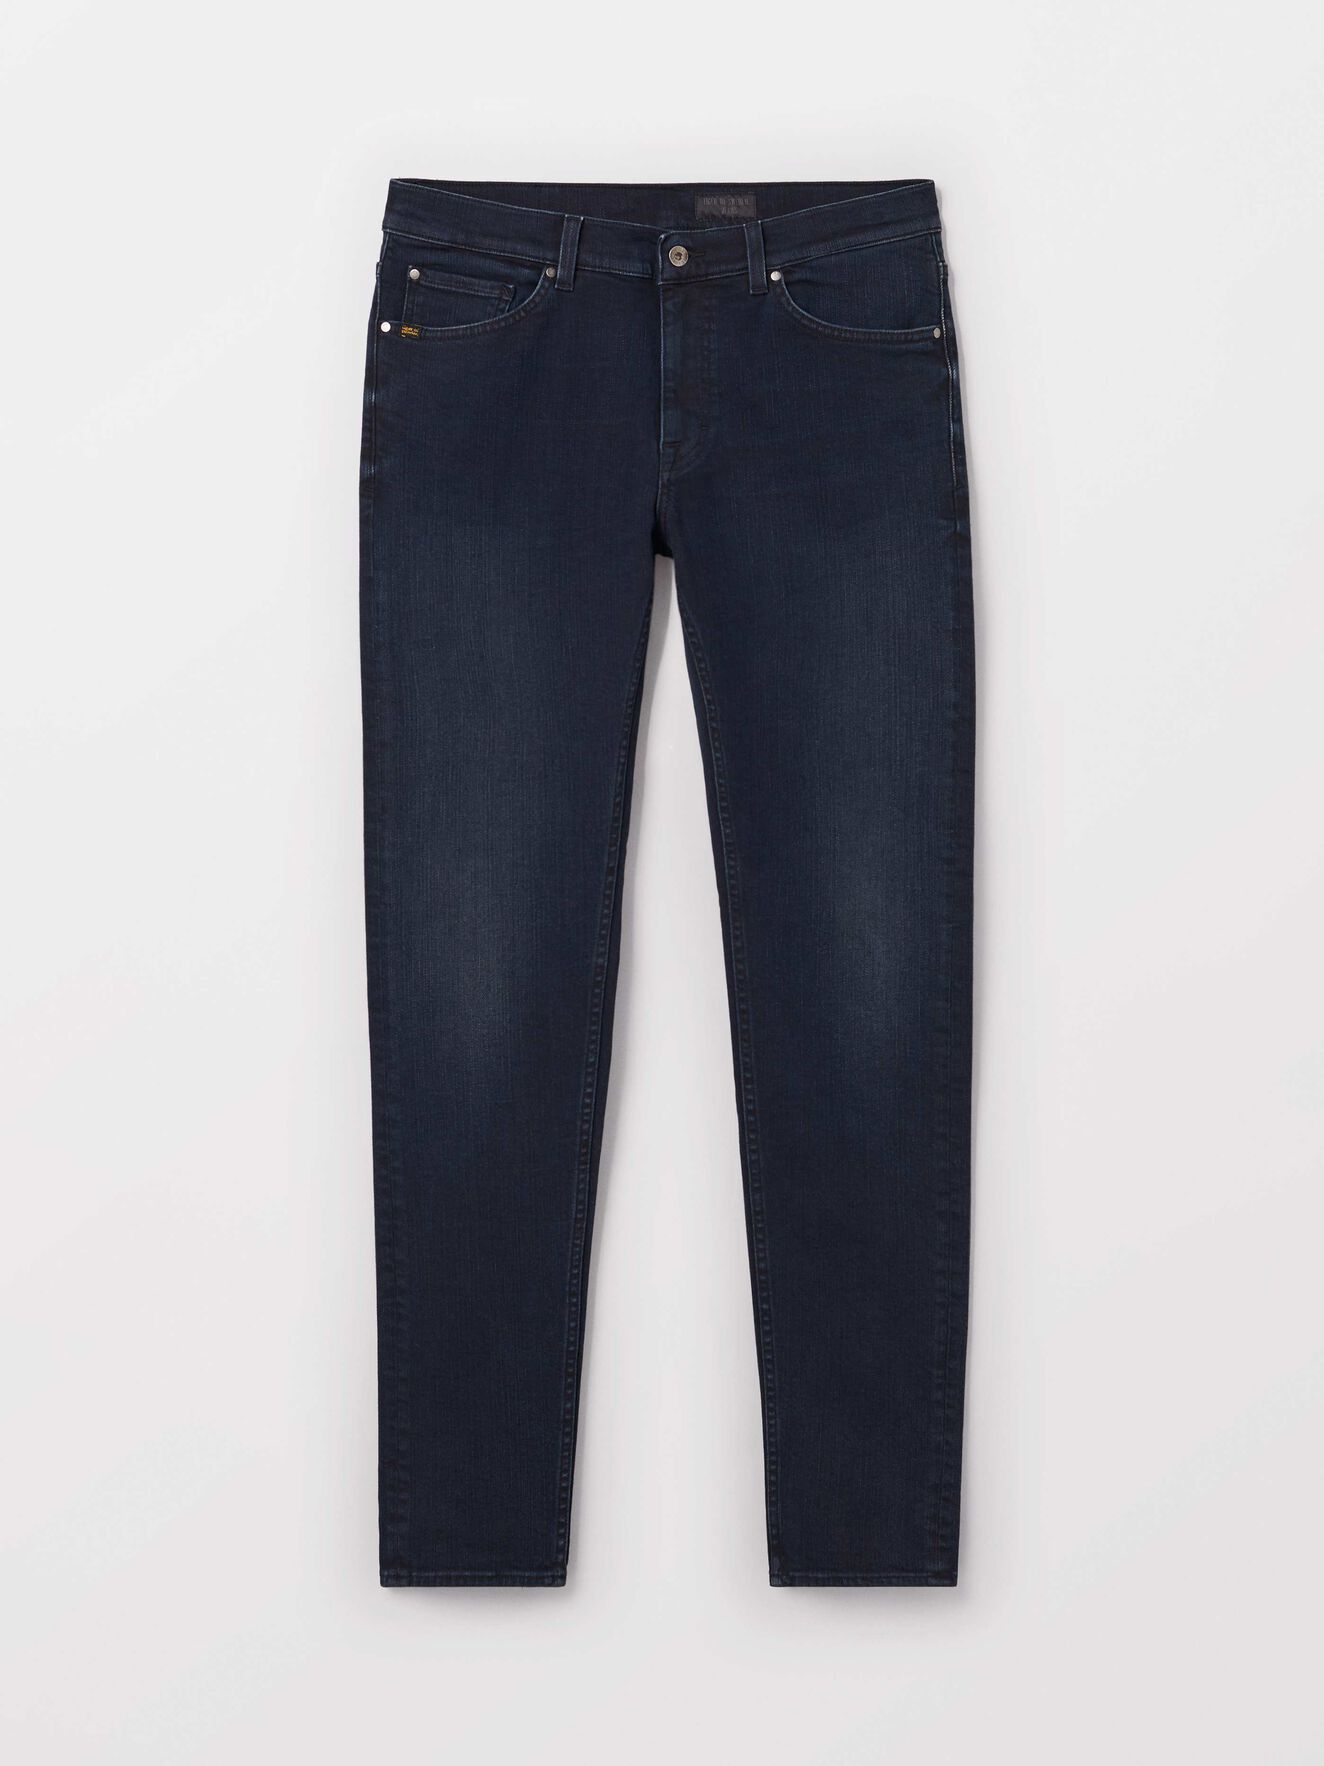 b7aaa8533e Jeans - Shop men s jeans online at Tiger of Sweden